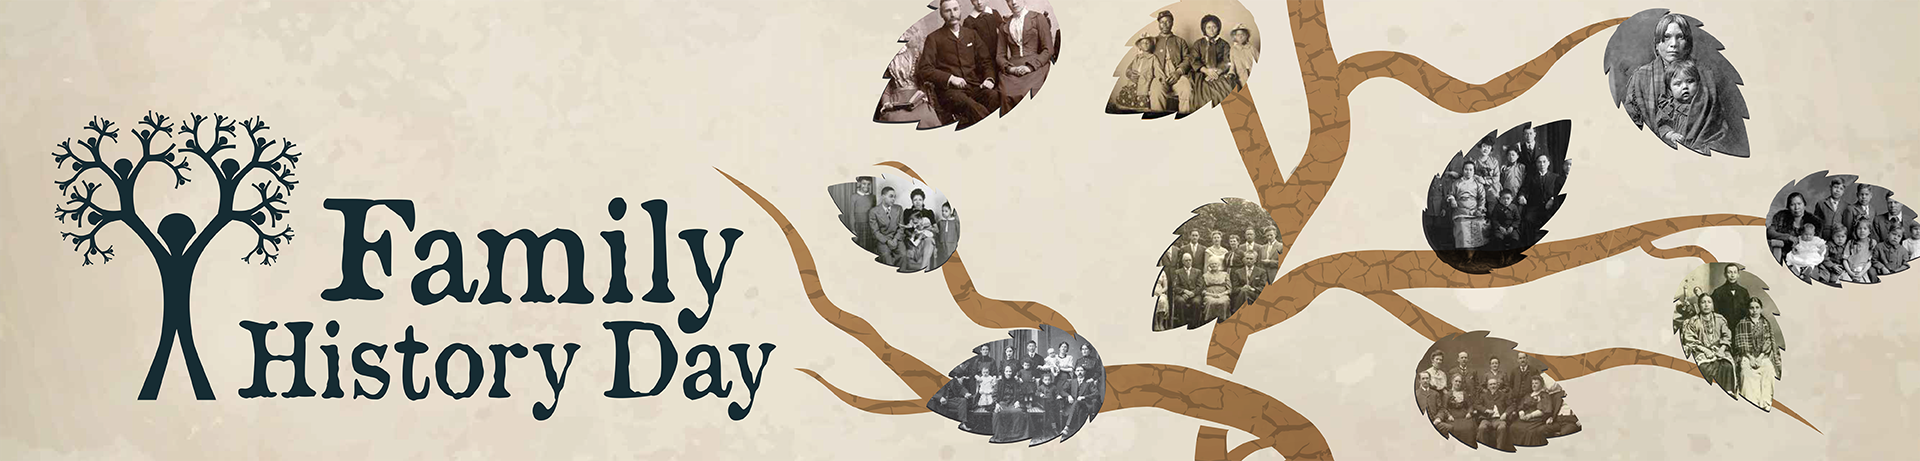 Graphic for Family History Day